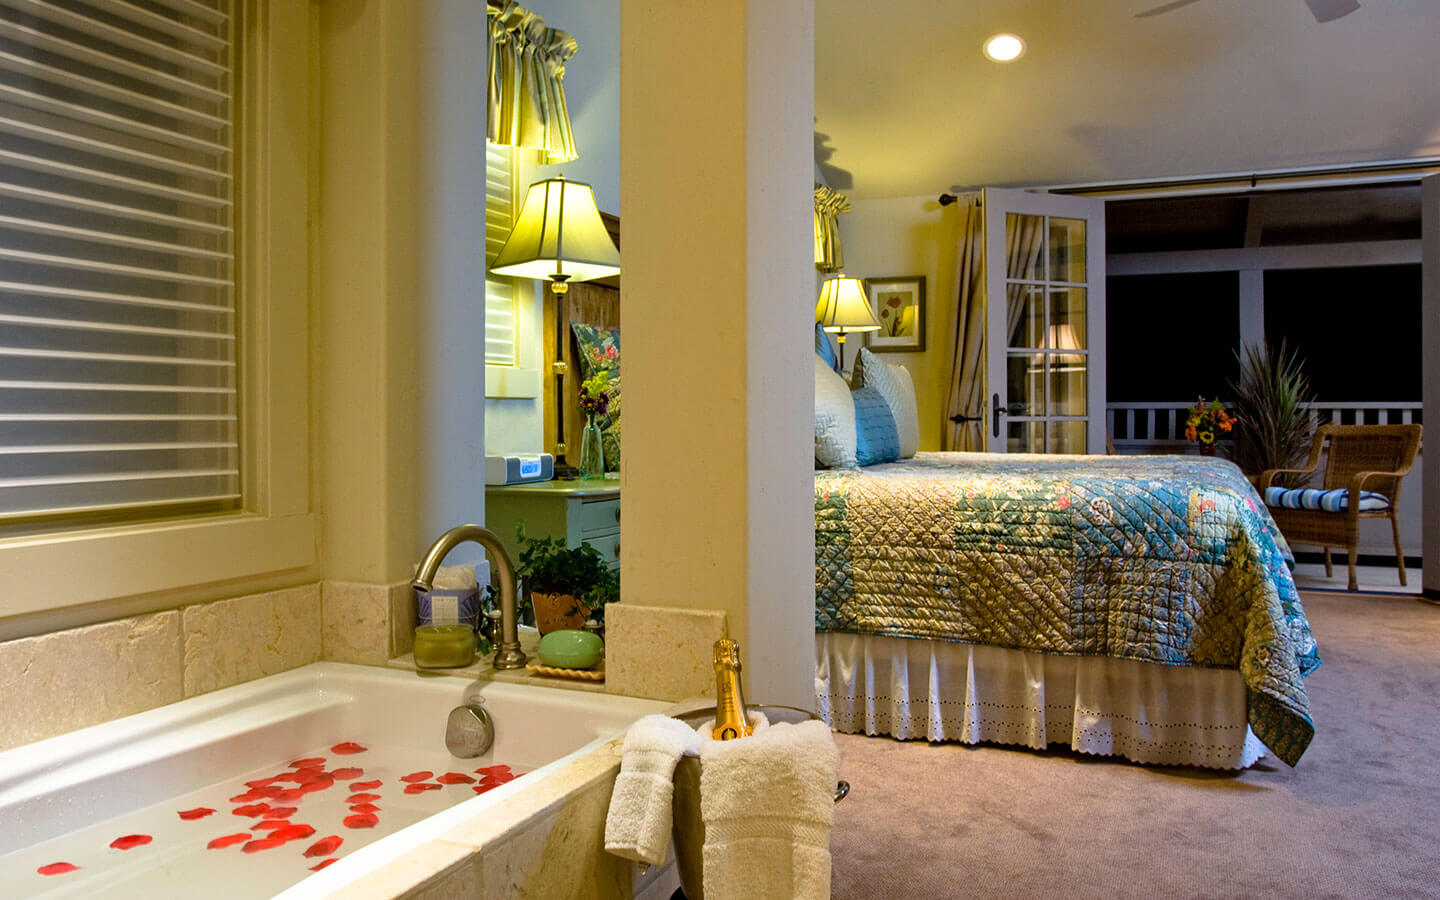 Luxury King Suite bed and spa tub